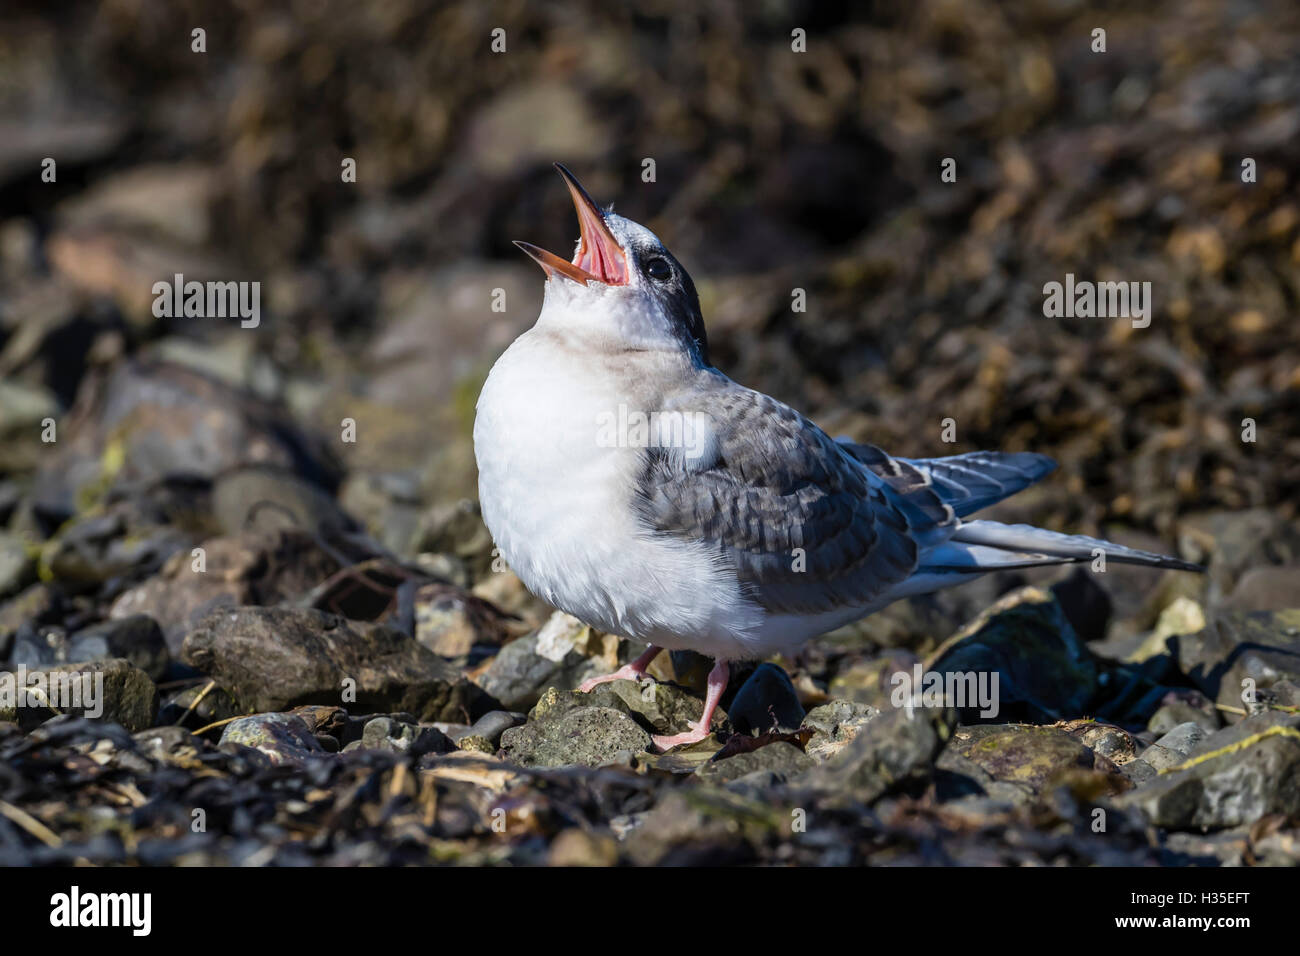 Arctic tern chick (Sterna paradisaea), calling for food from its parent on Flatey Island, Iceland, Polar Regions - Stock Image